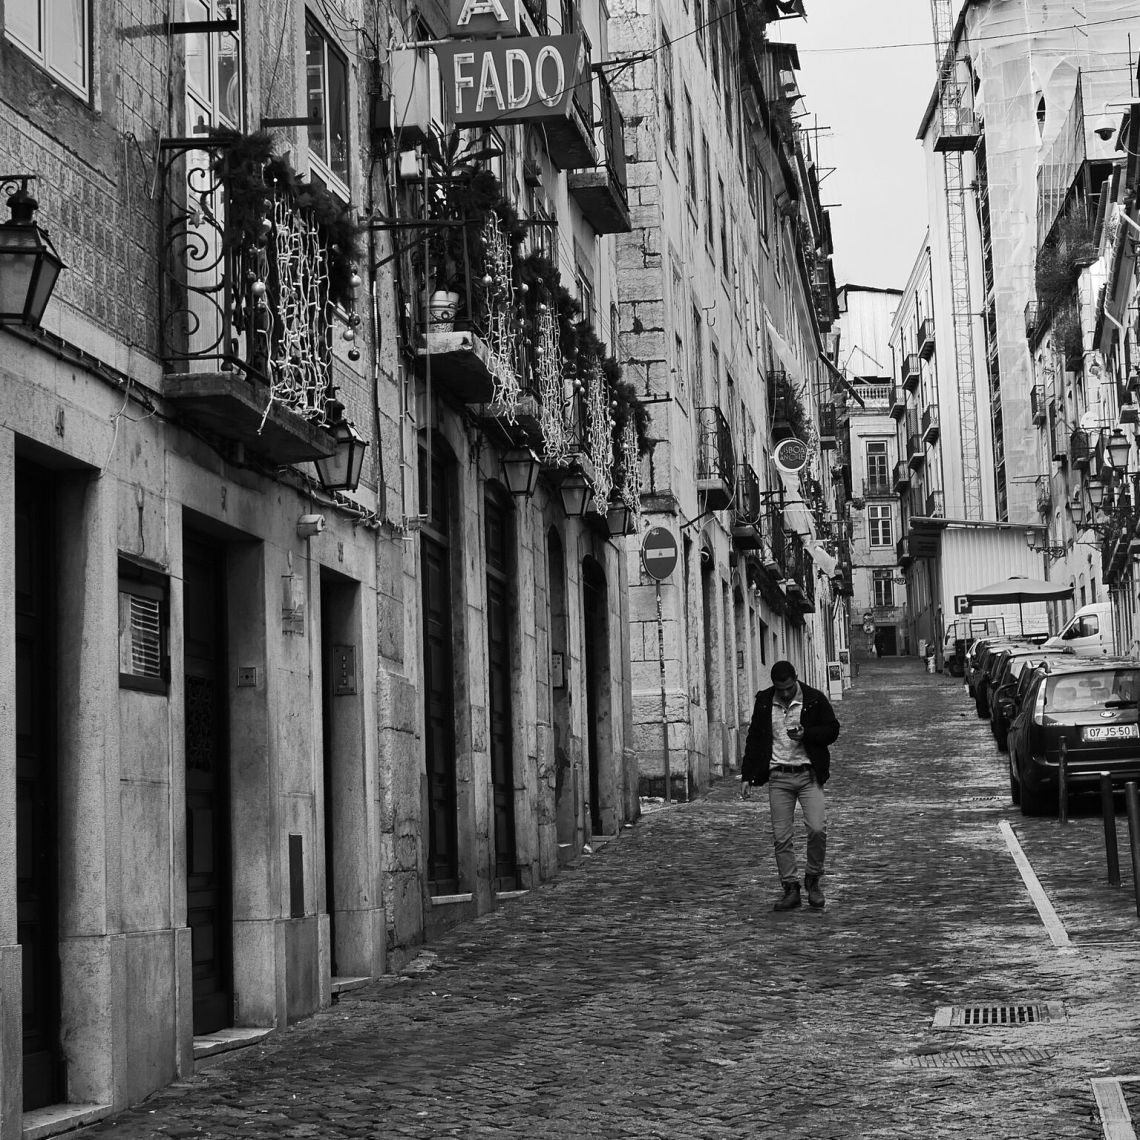 Man strolls in the Bairo Alto of Lisbon, the fado singing district packed with great restaurants featuring traditional dishes.